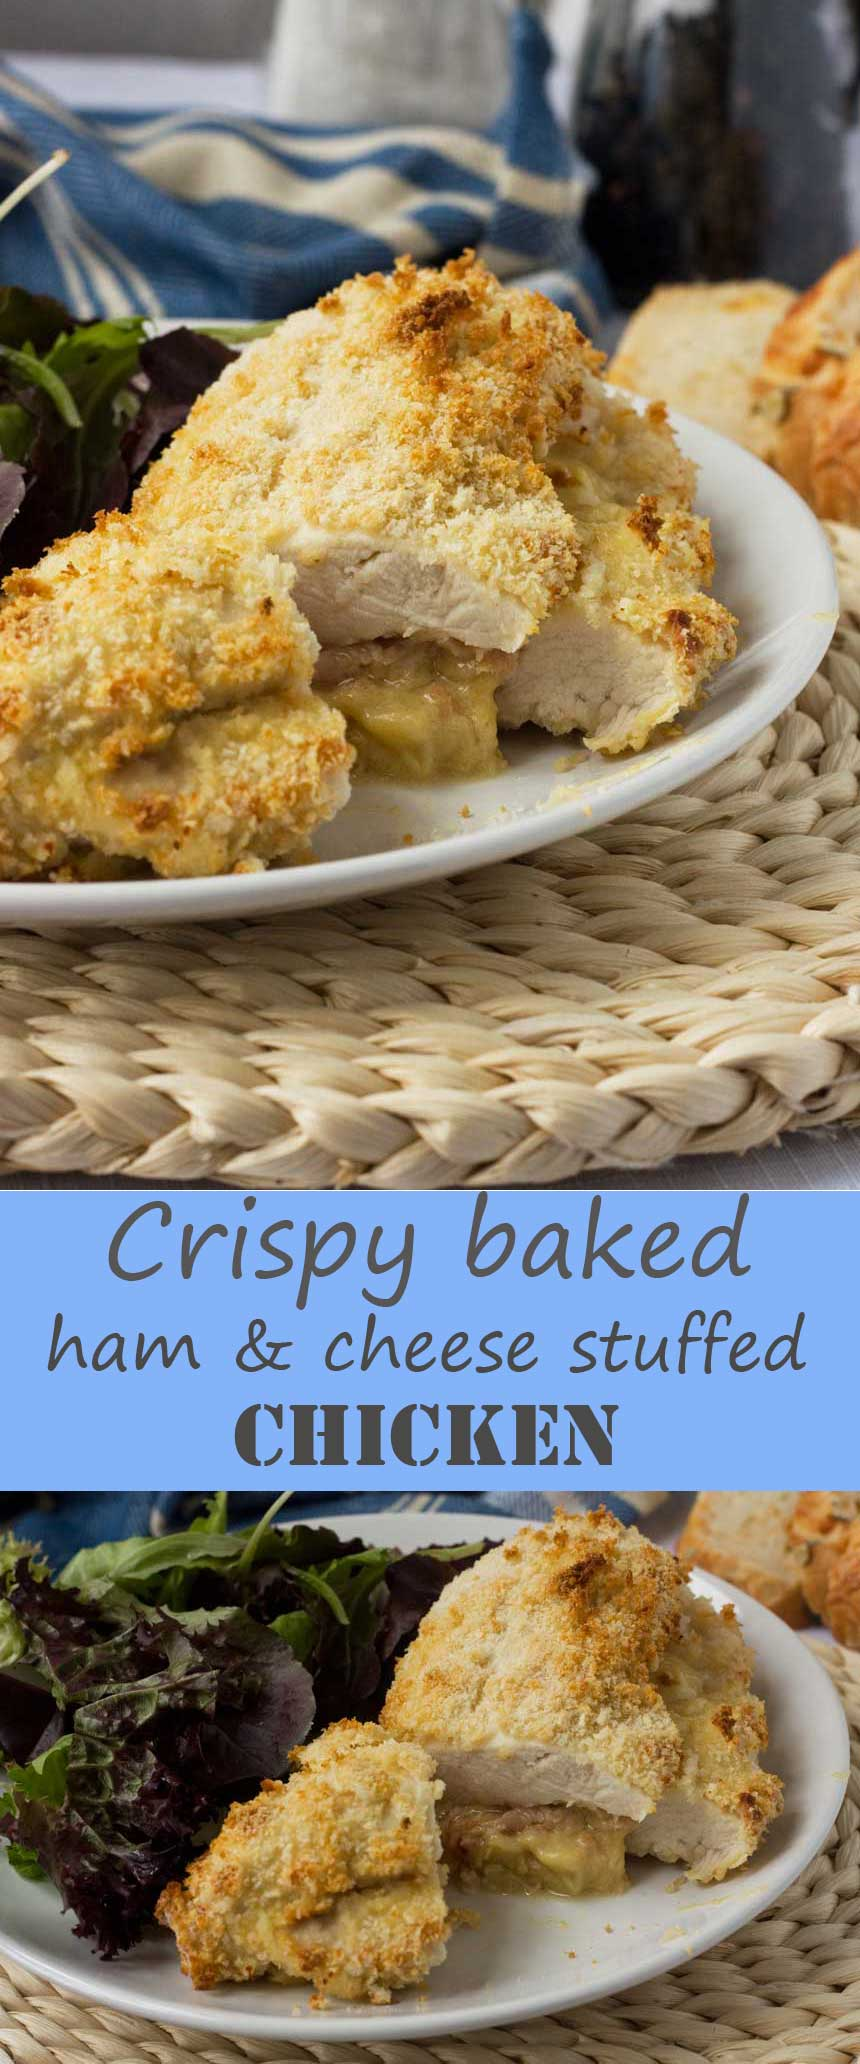 Crispy baked cheese and ham stuffed chicken - so easy and tasty that you'll make it time and time again.